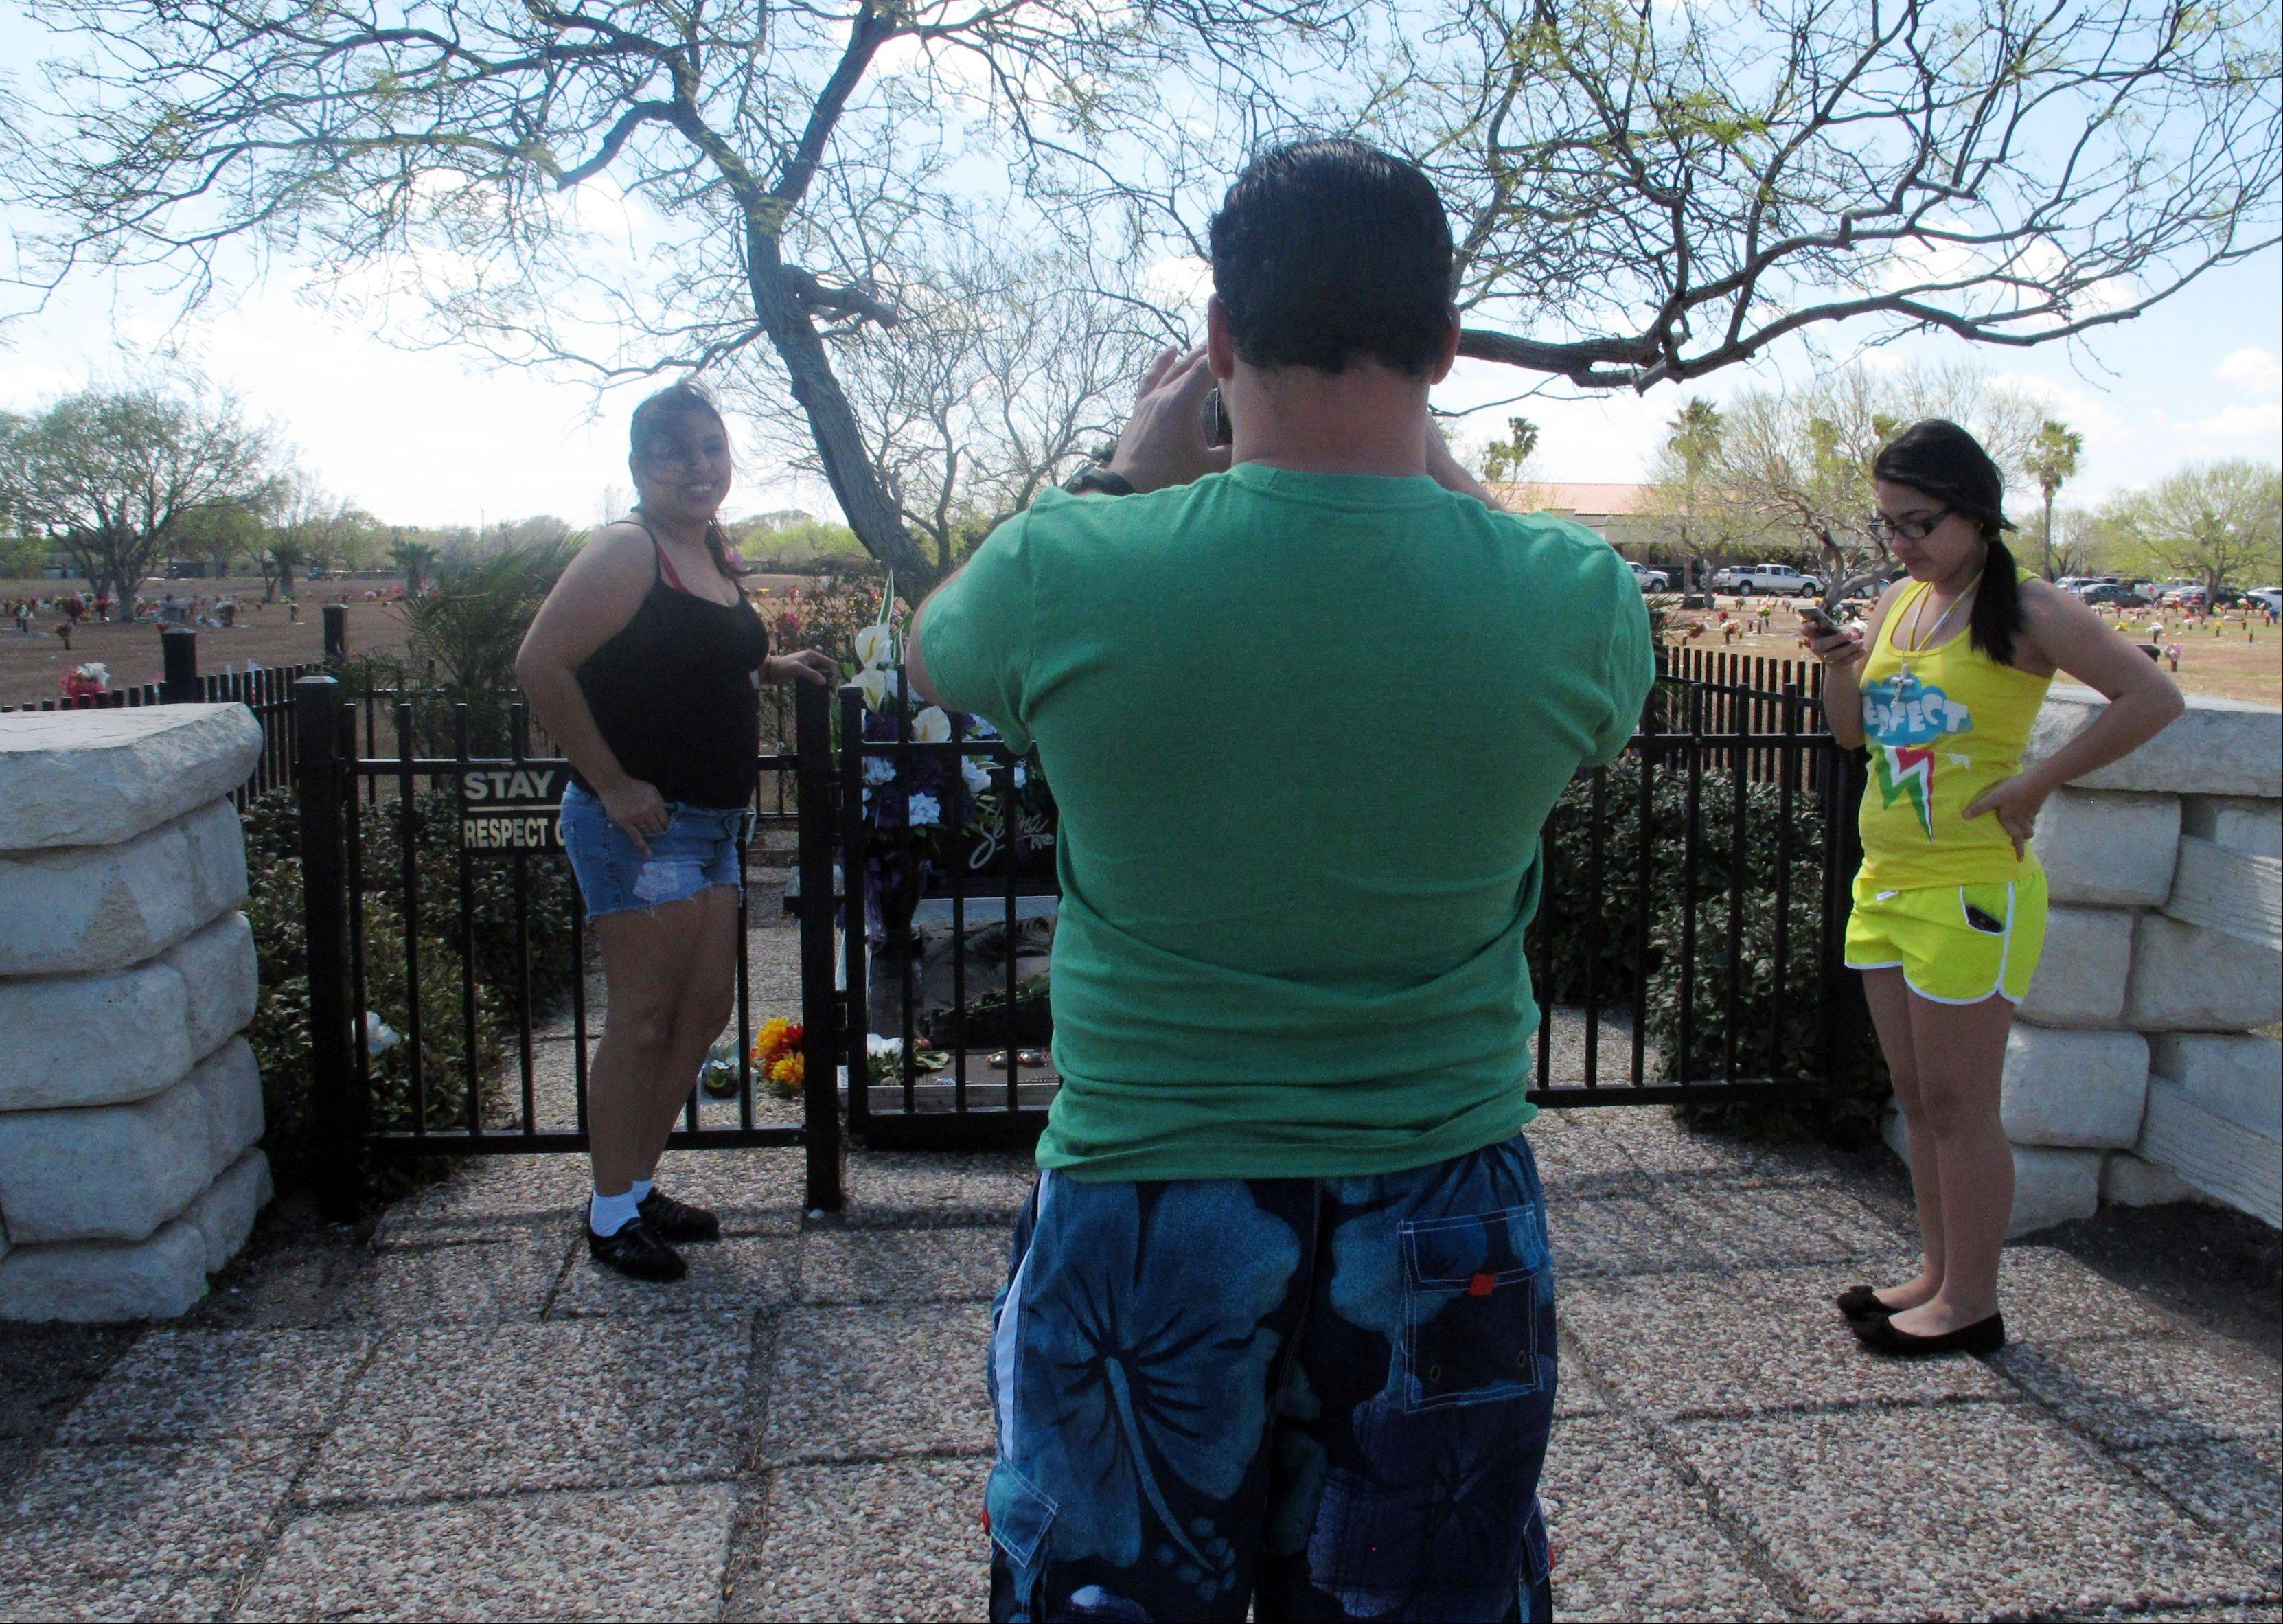 Tourists take photos in front of the resting place of the late Tejano singer, Selena at the Seaside Memorial Park.